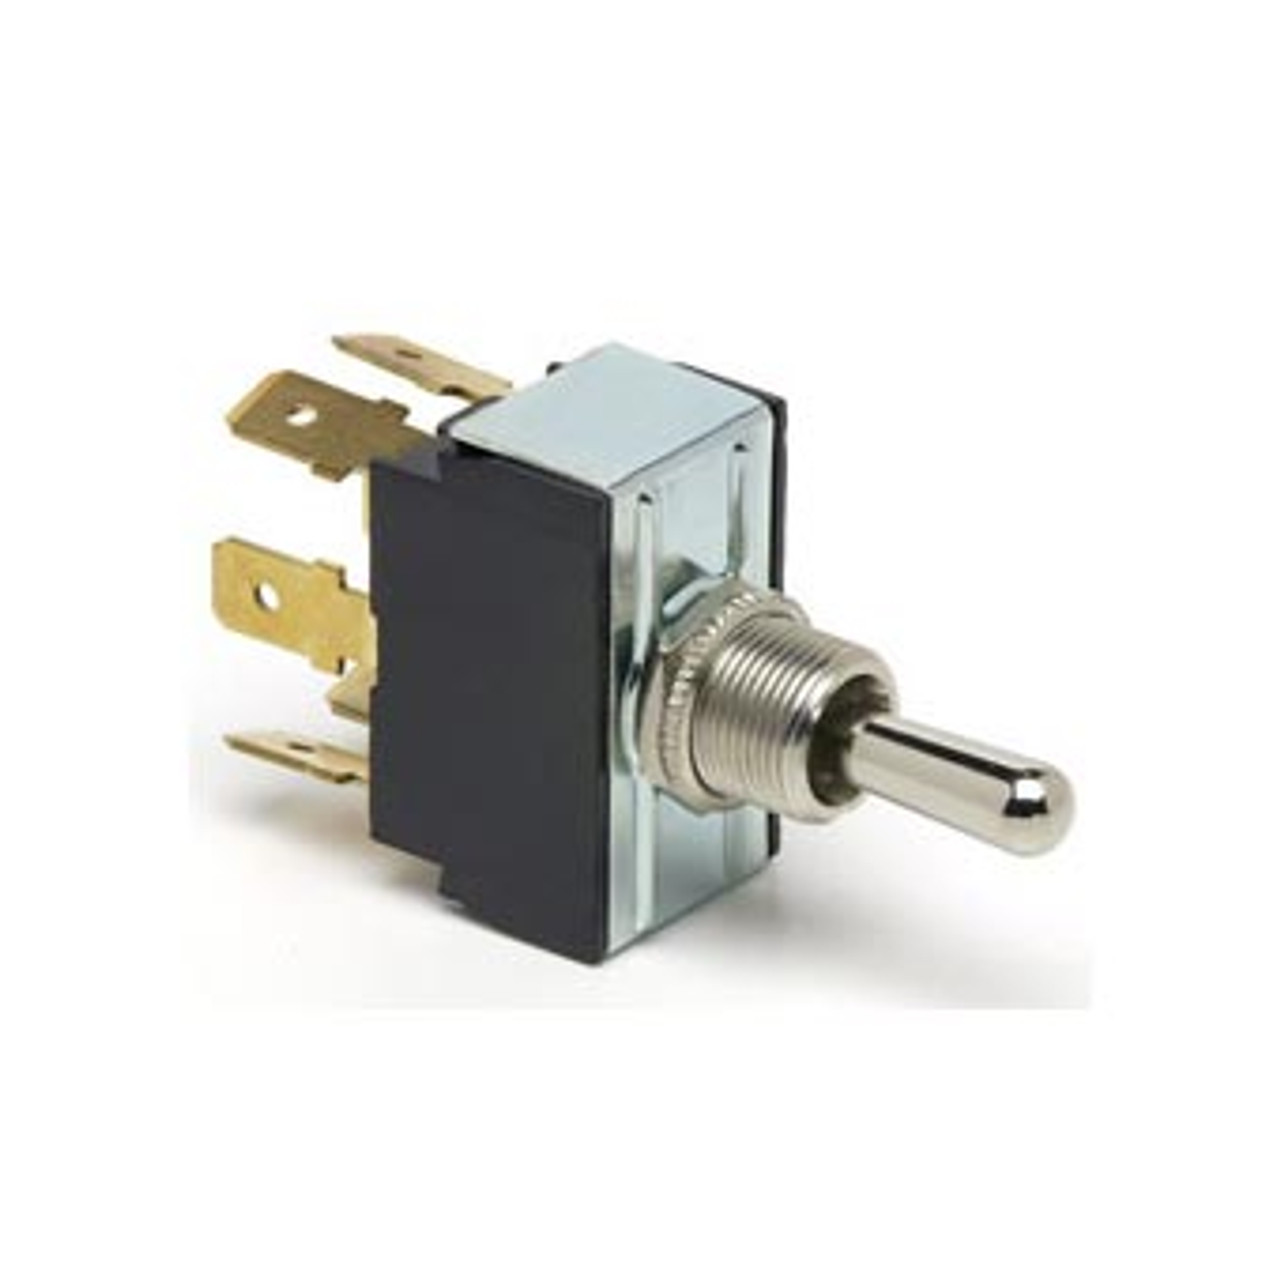 TOGGLE SWIT ON-ON 6 B/T DPDT 6 BLADE TERMINALS